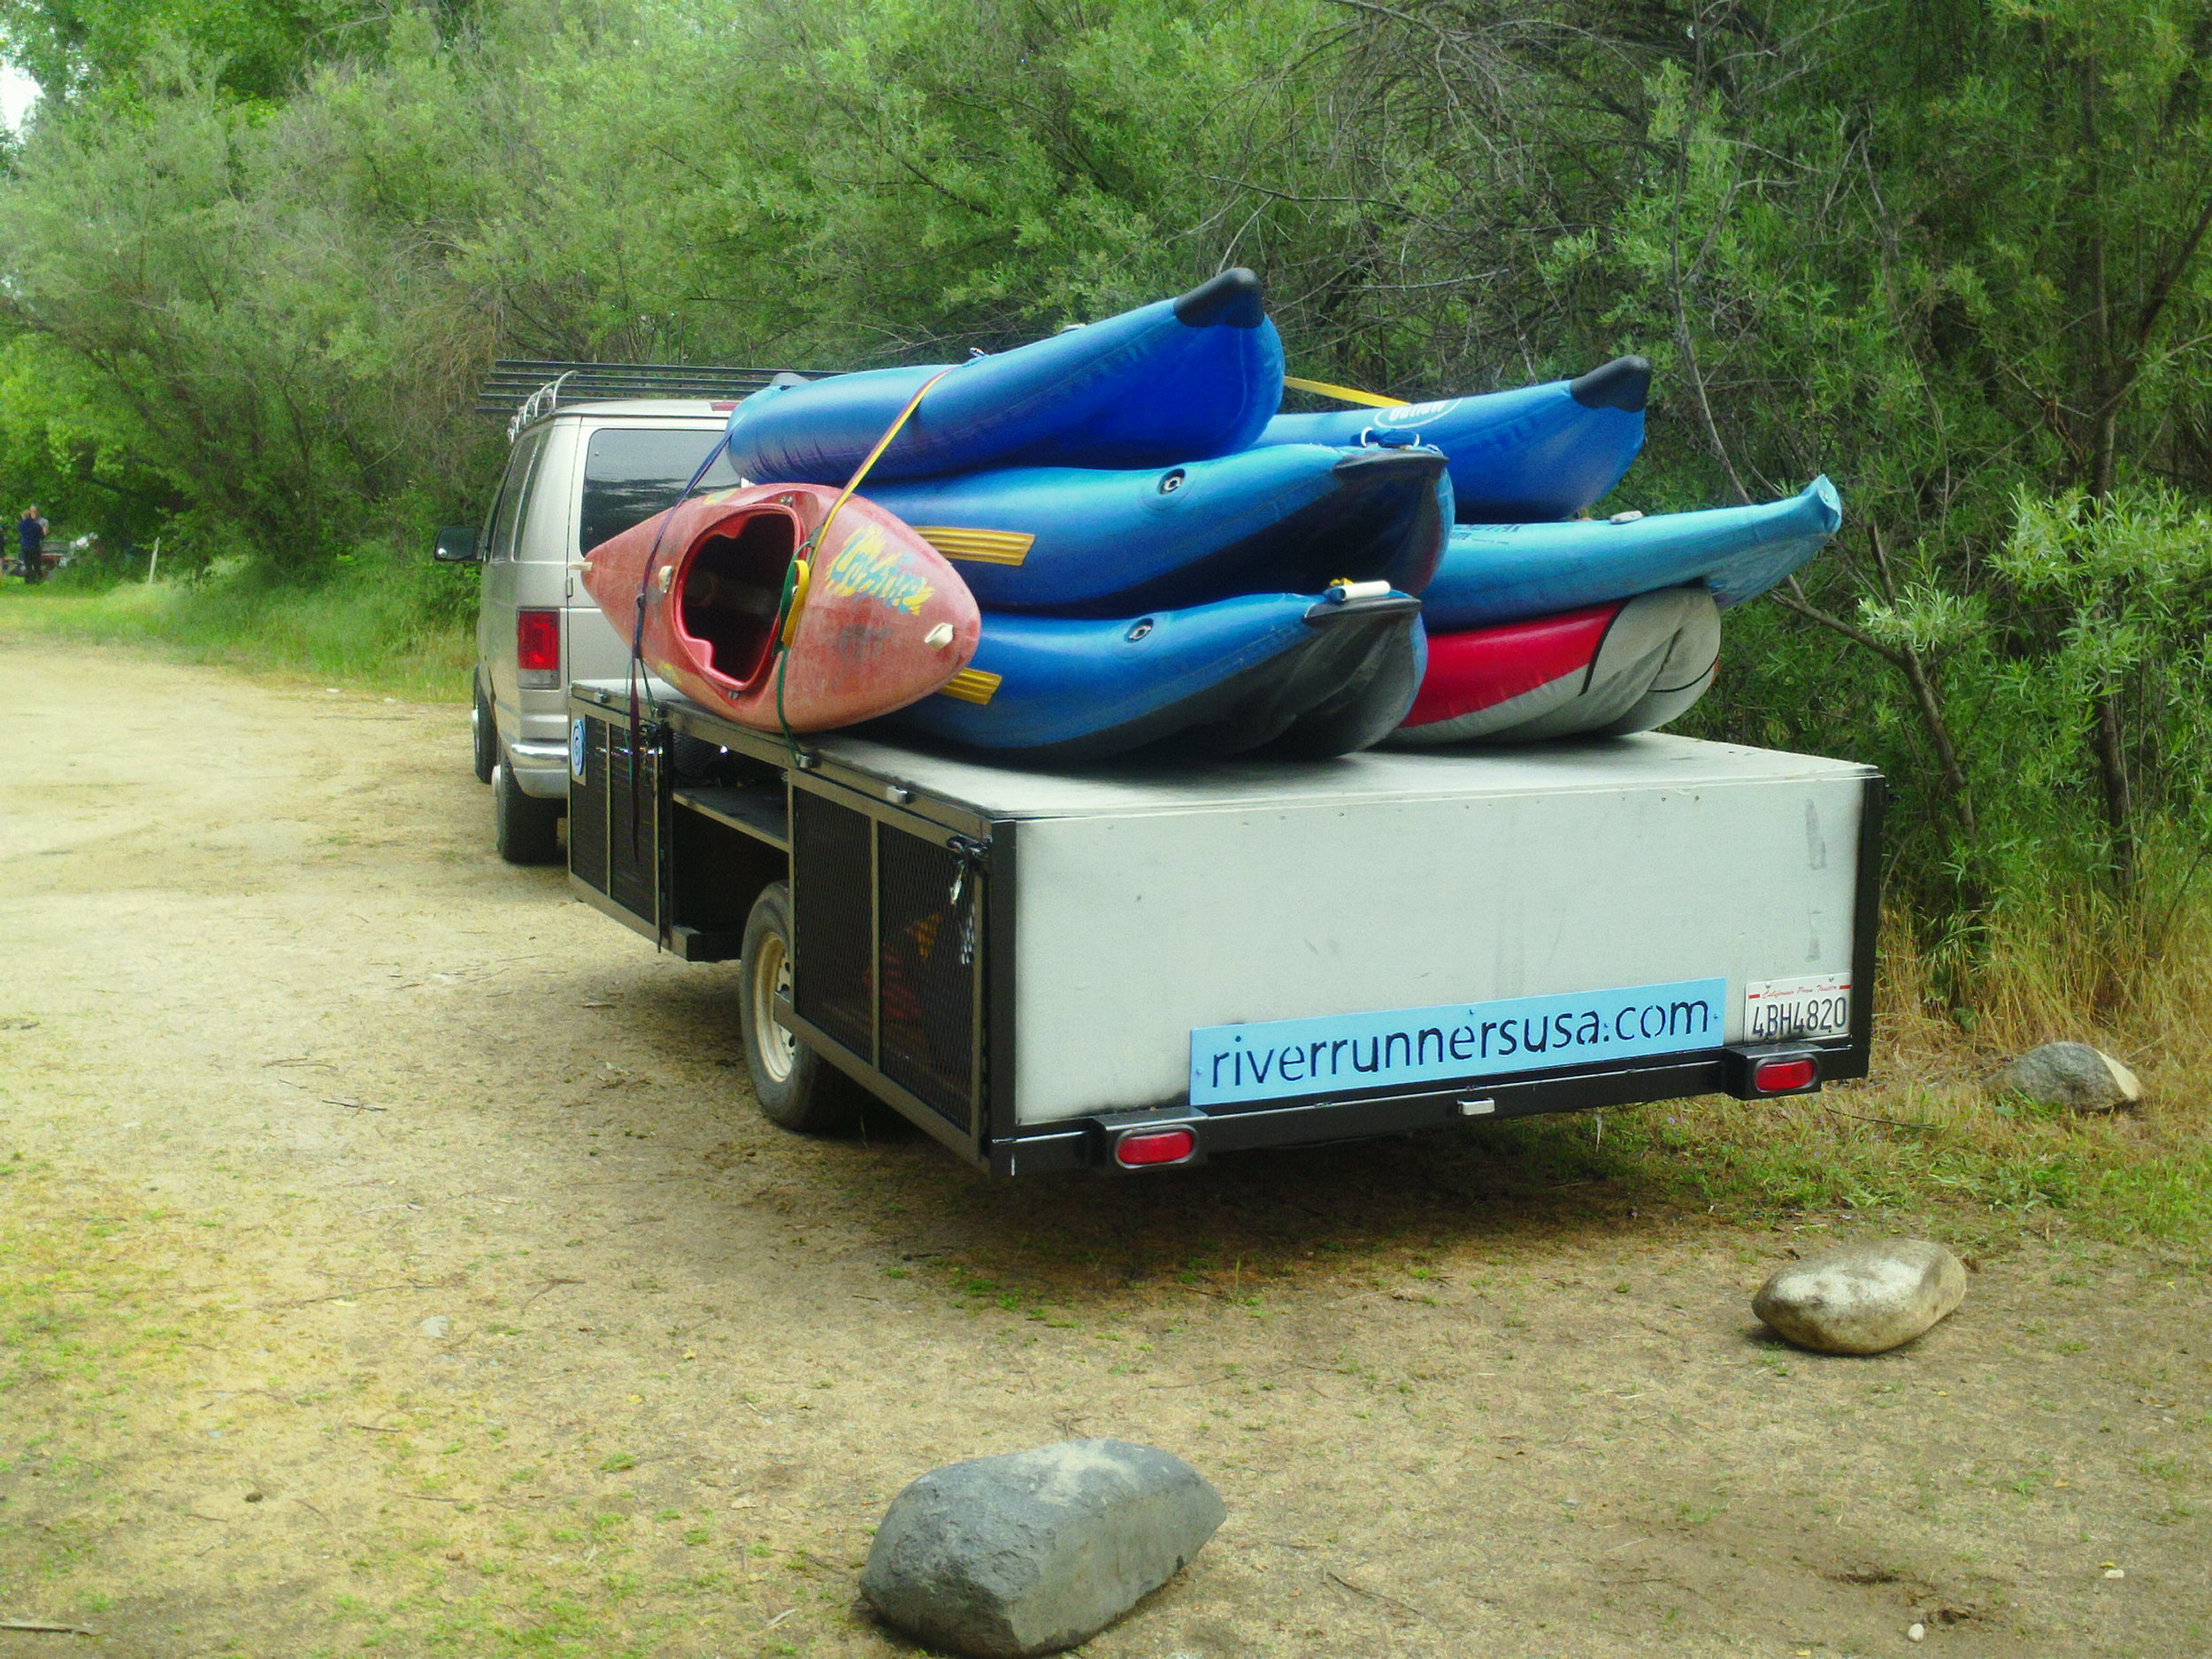 Ready to kayak the South Fork